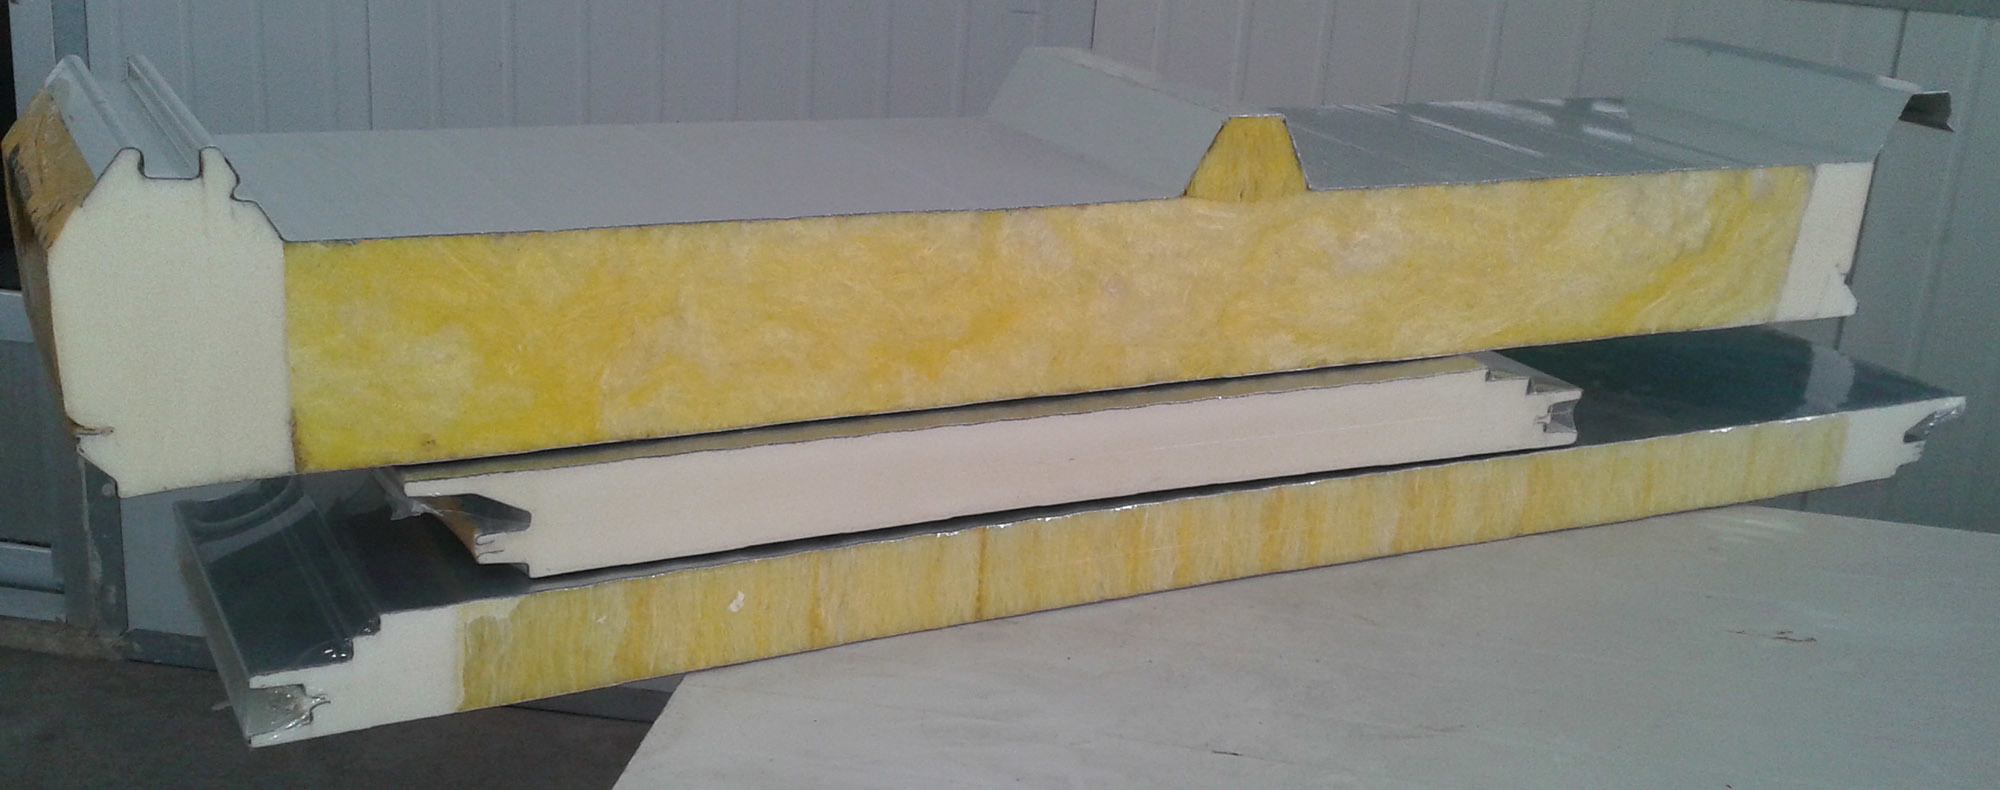 Wall Roof Sandwich Panel